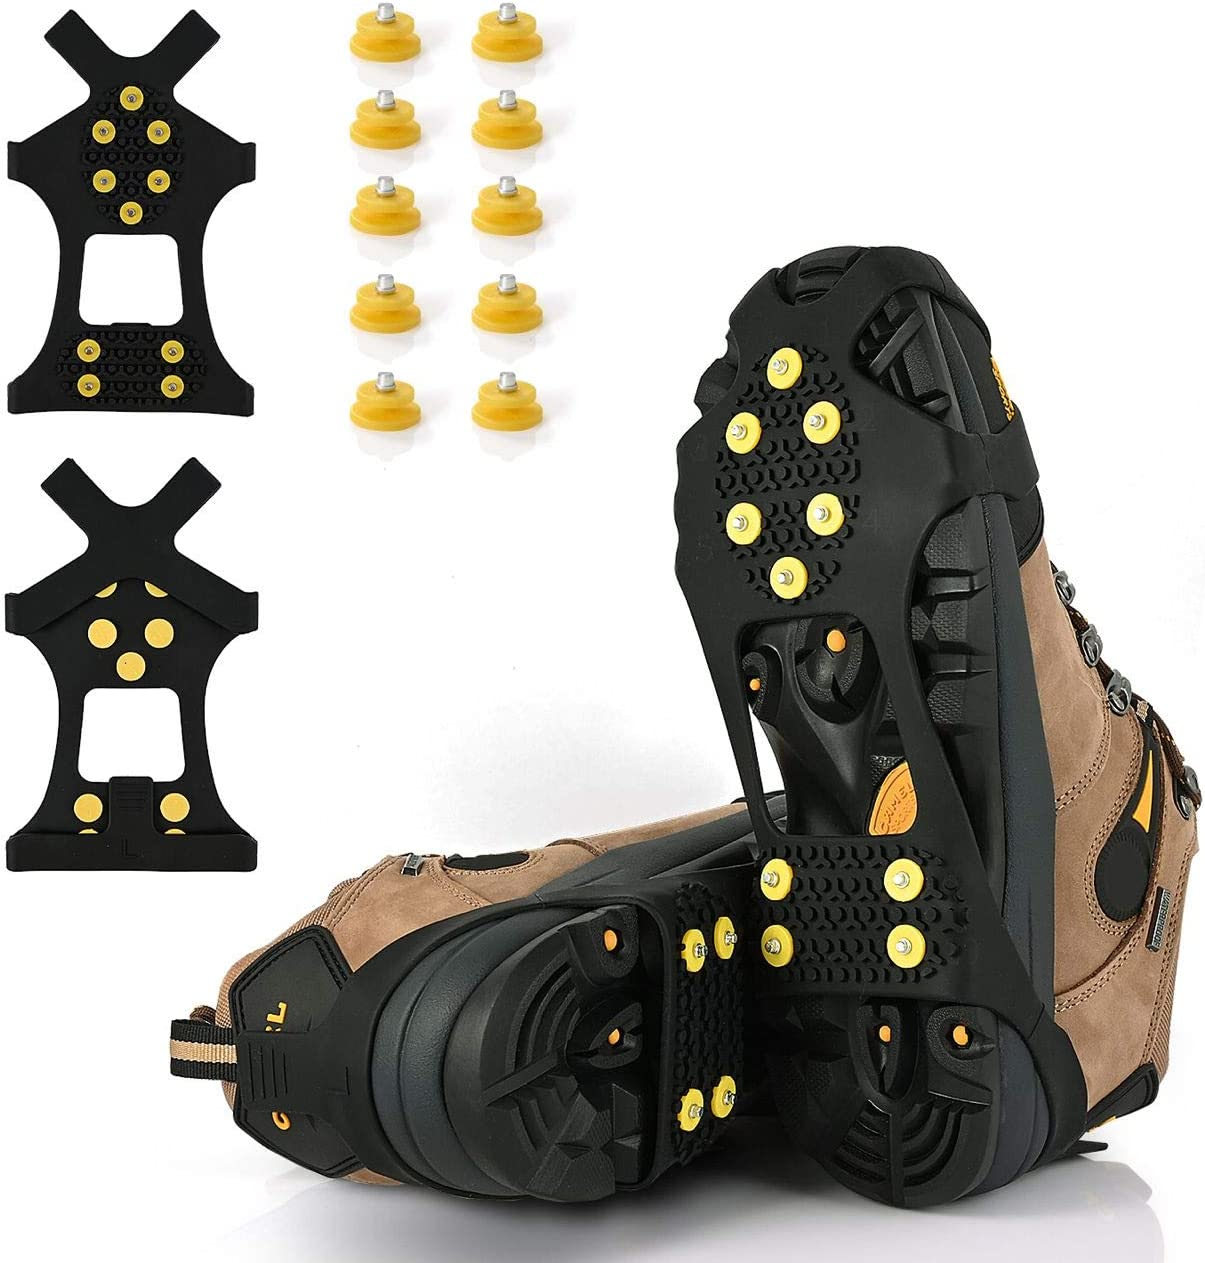 Netagon Winter Men Women Unisex Adults Studded Snow and Ice Over Shoe Grips with Anti Slip Grip Studs PAIR